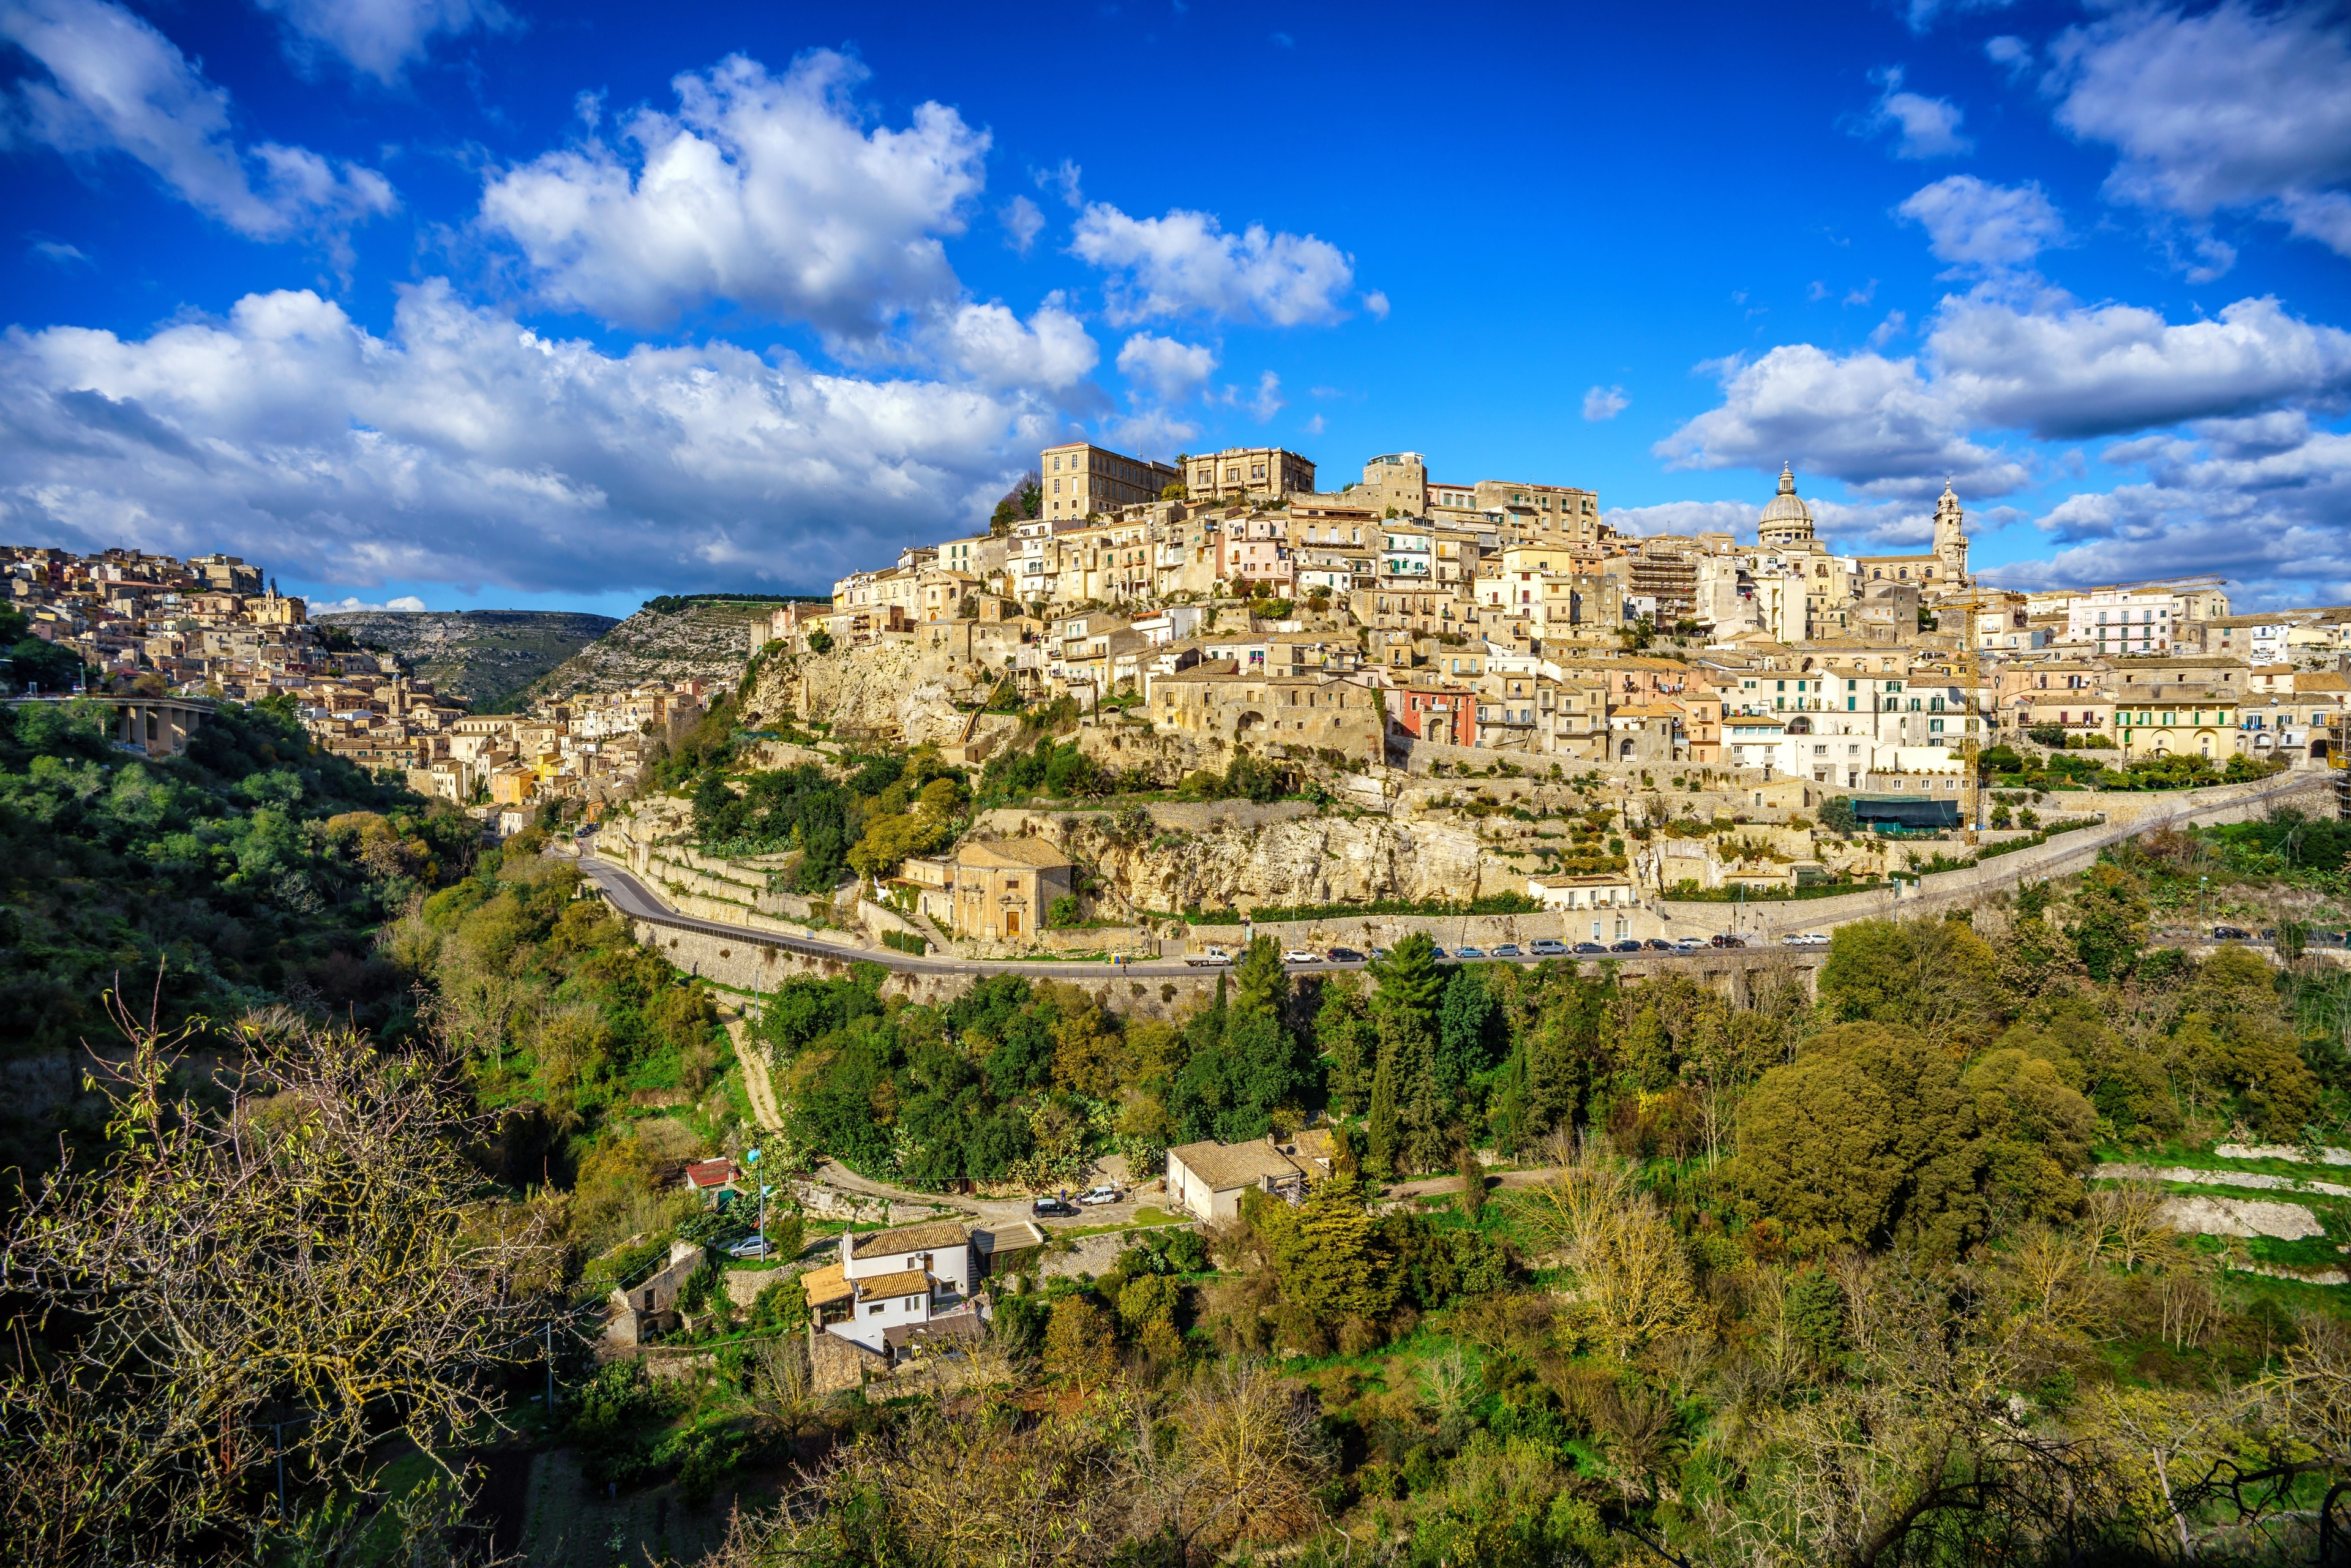 Province of Ragusa, Sicily, Italy